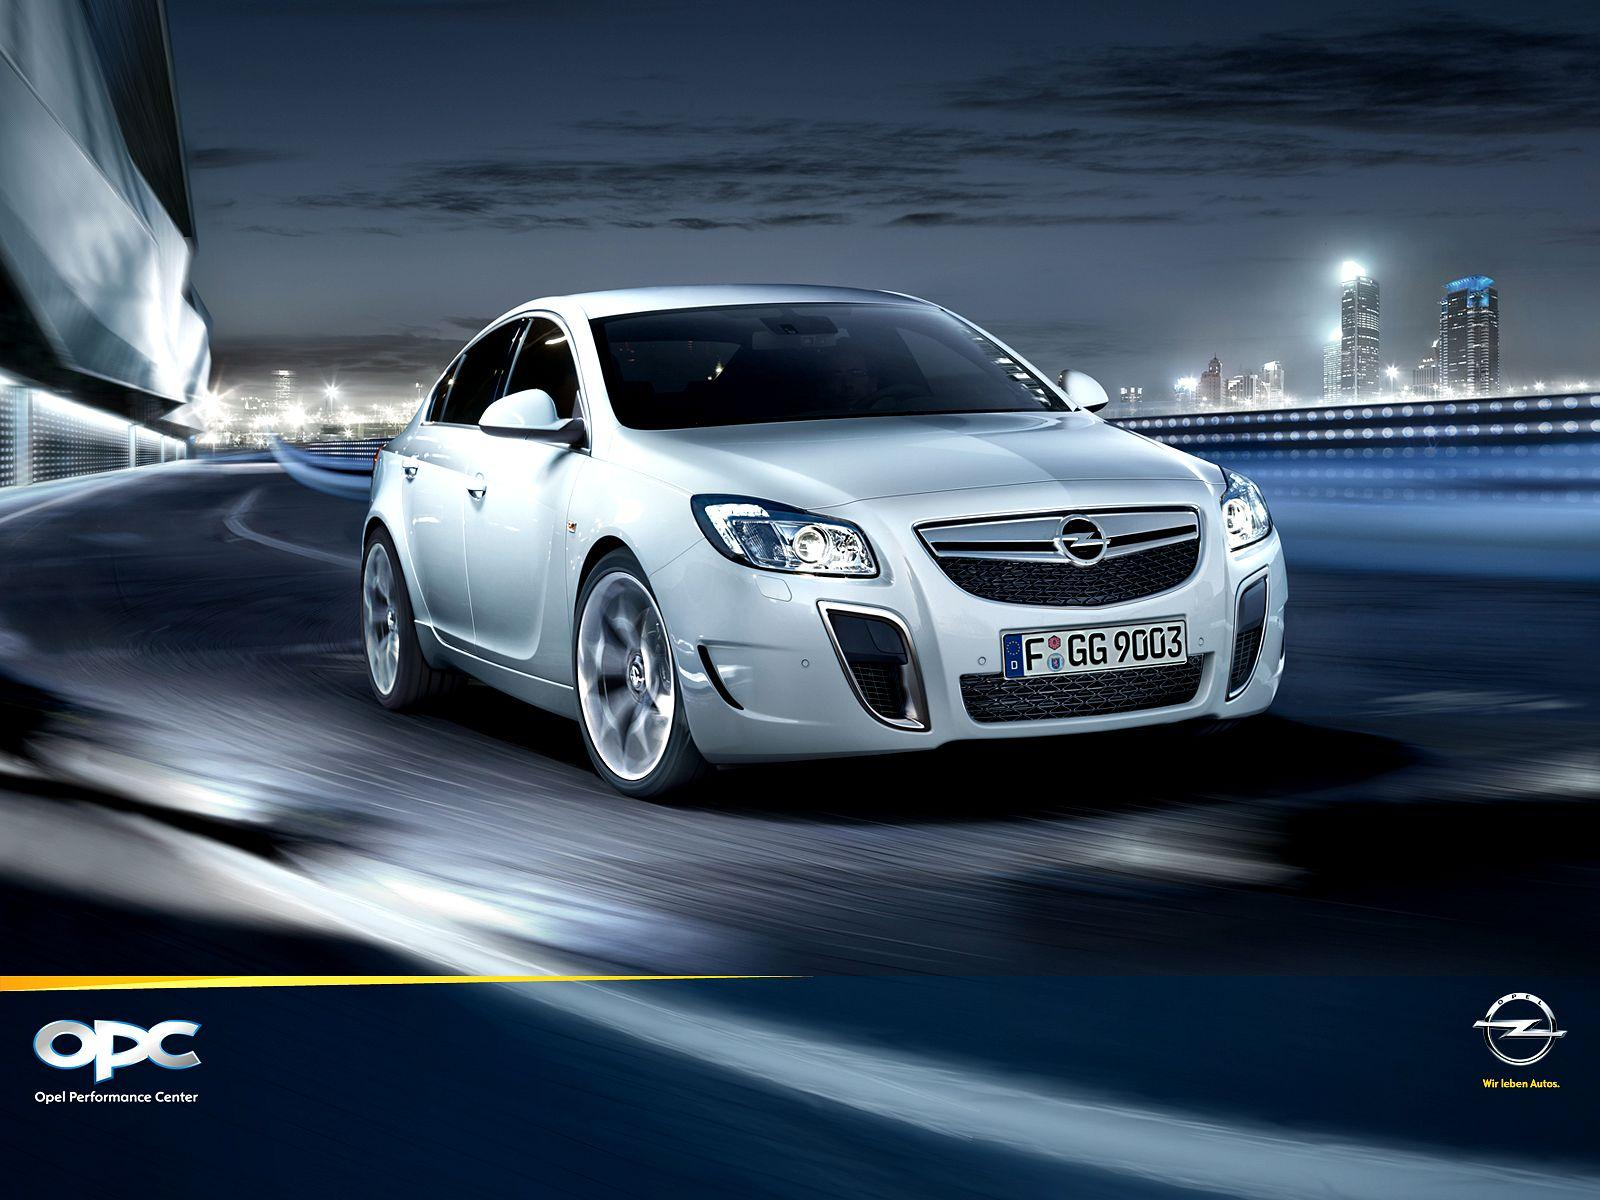 Opel Insignia Wallpapers Image Group